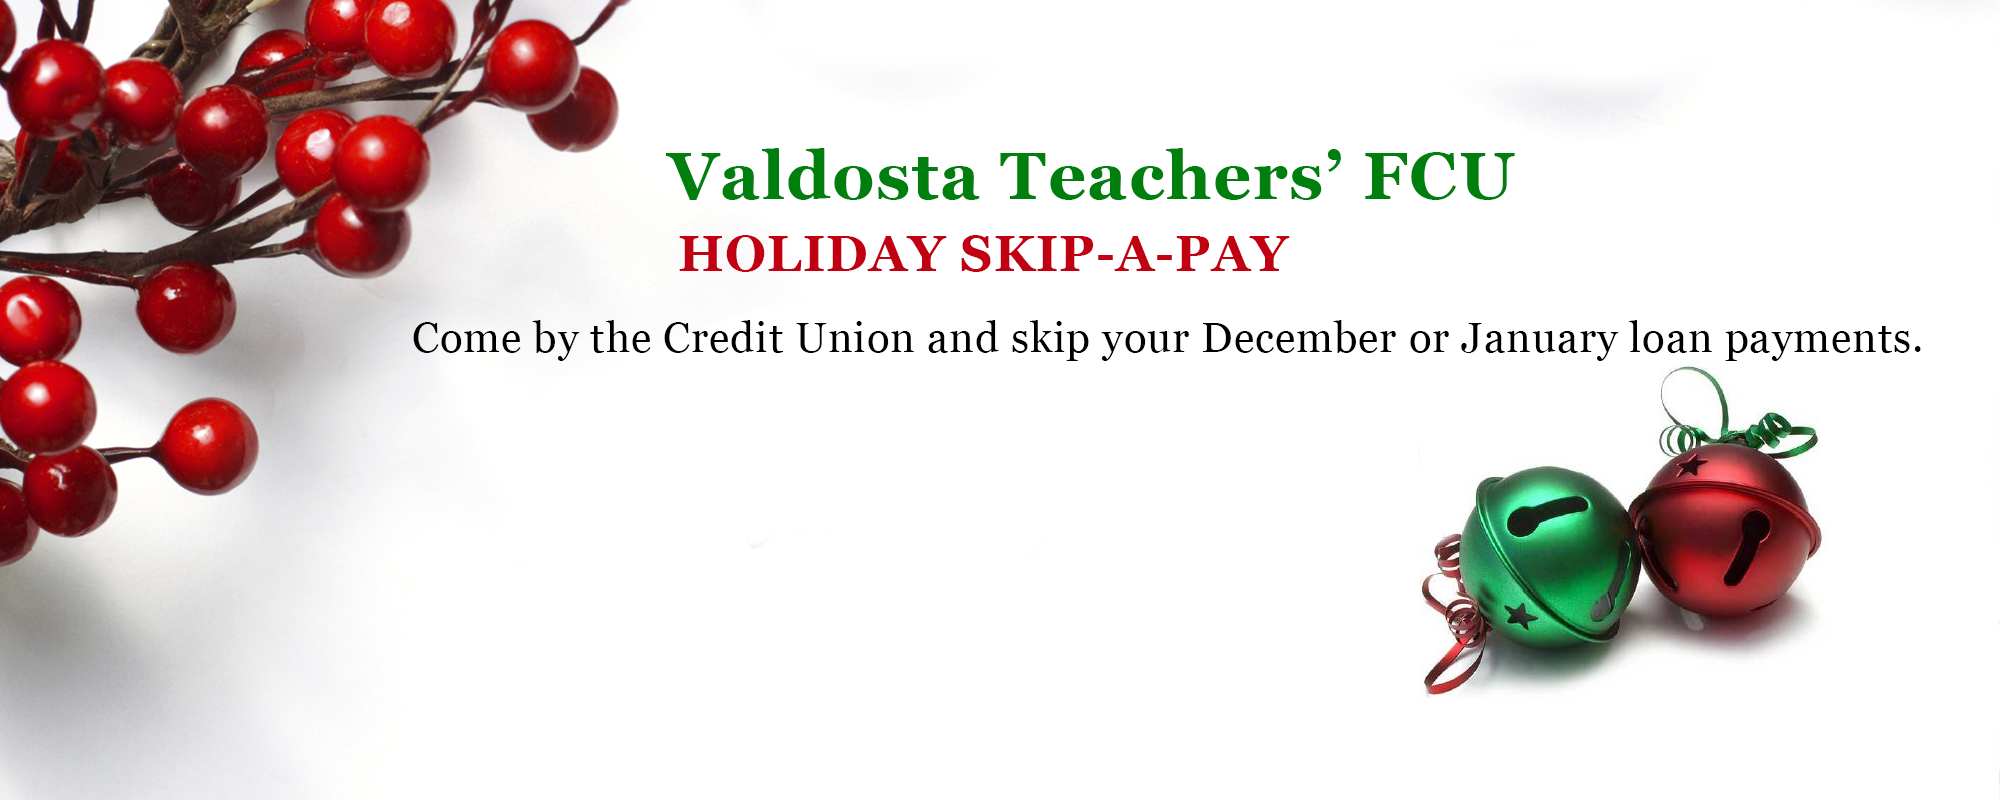 Holiday Skip-A-Pay